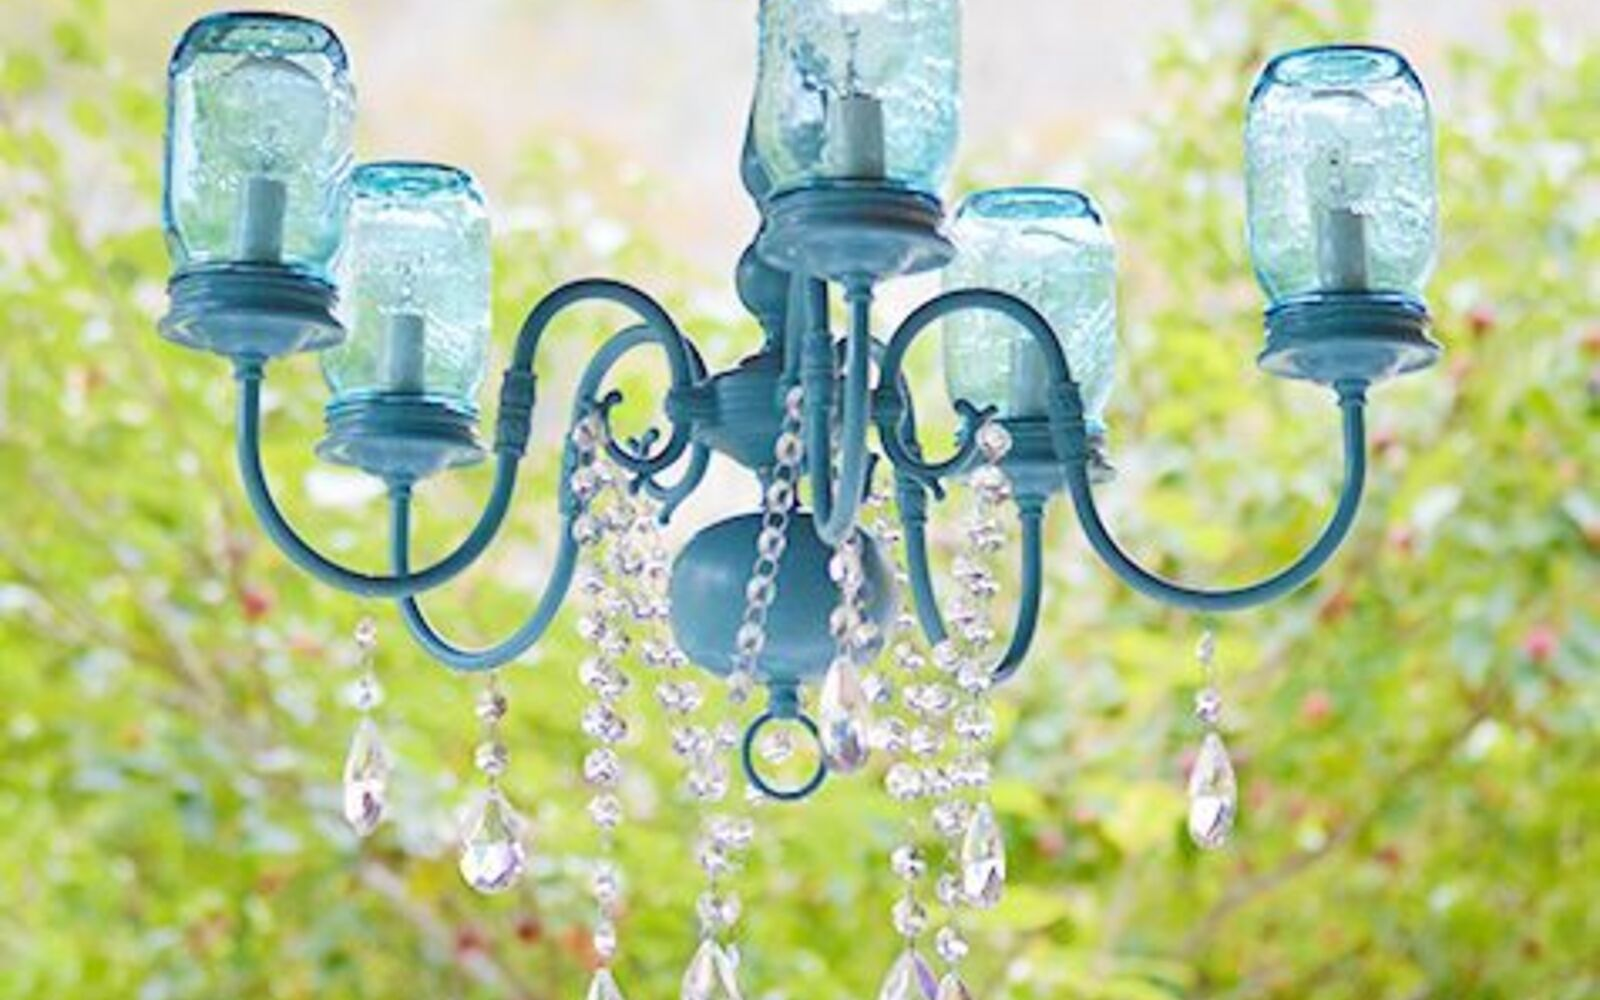 s 30 great mason jar ideas you have to try, Breathtaking Boho Chic Chandelier